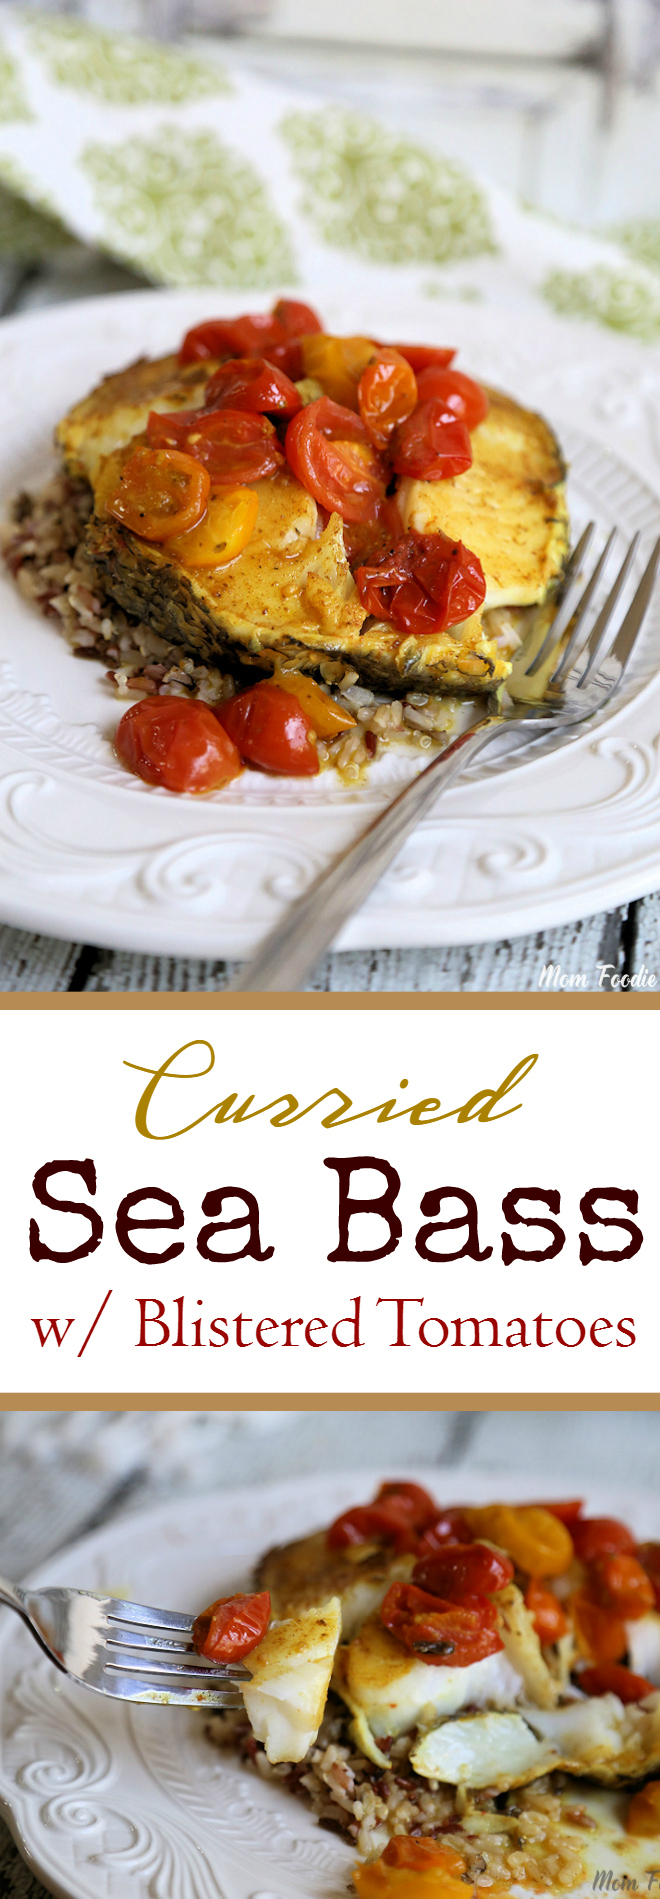 Curried Sea Bass with Blistered Tomatoes